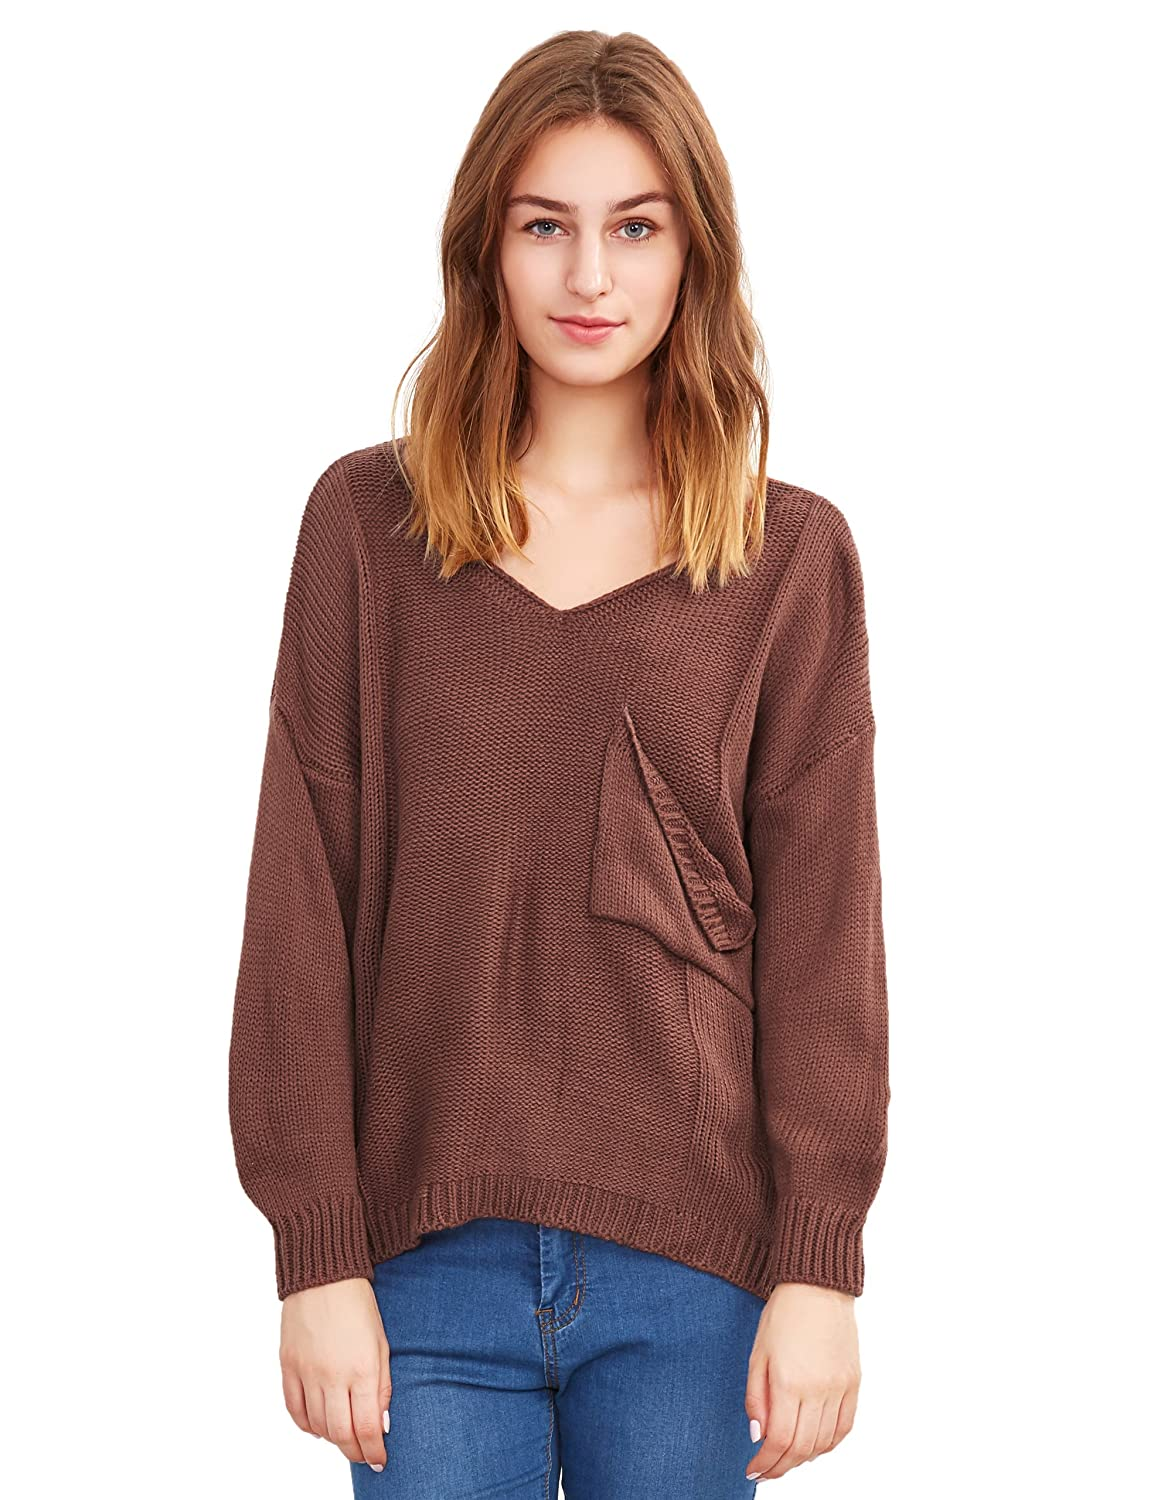 ROMWE Women's Casual V-Neck Long Sleeve Pocket Loose Knit Sweater